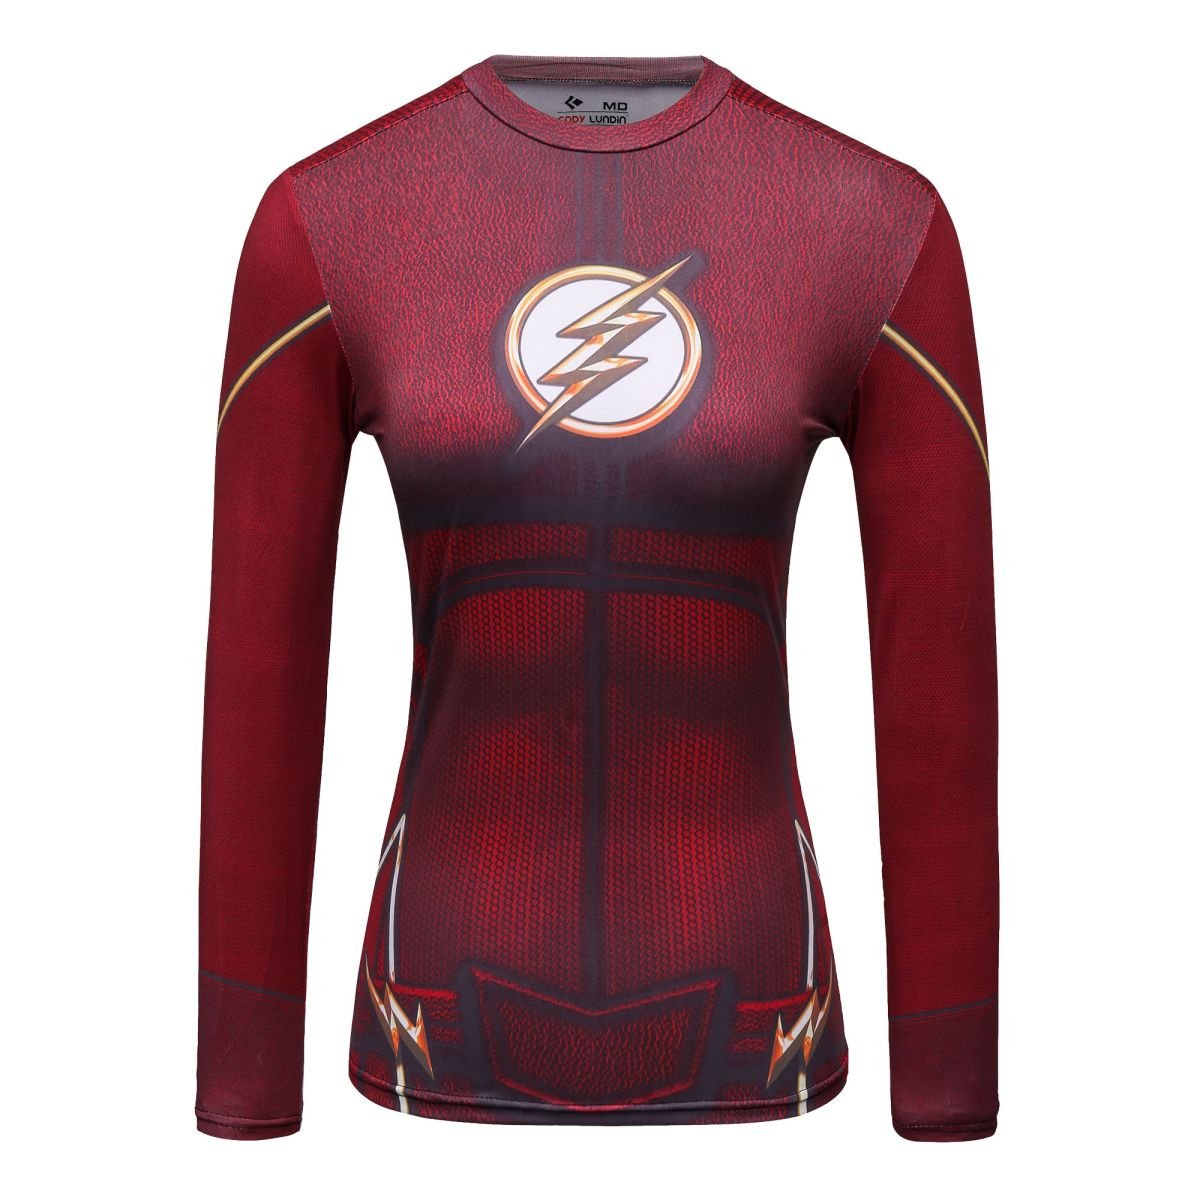 Cody Lundin Woman's Movie Theme Print American Lightning Hero Running Sport Fitness T-shirt Exercise Tights Longsleeve Top